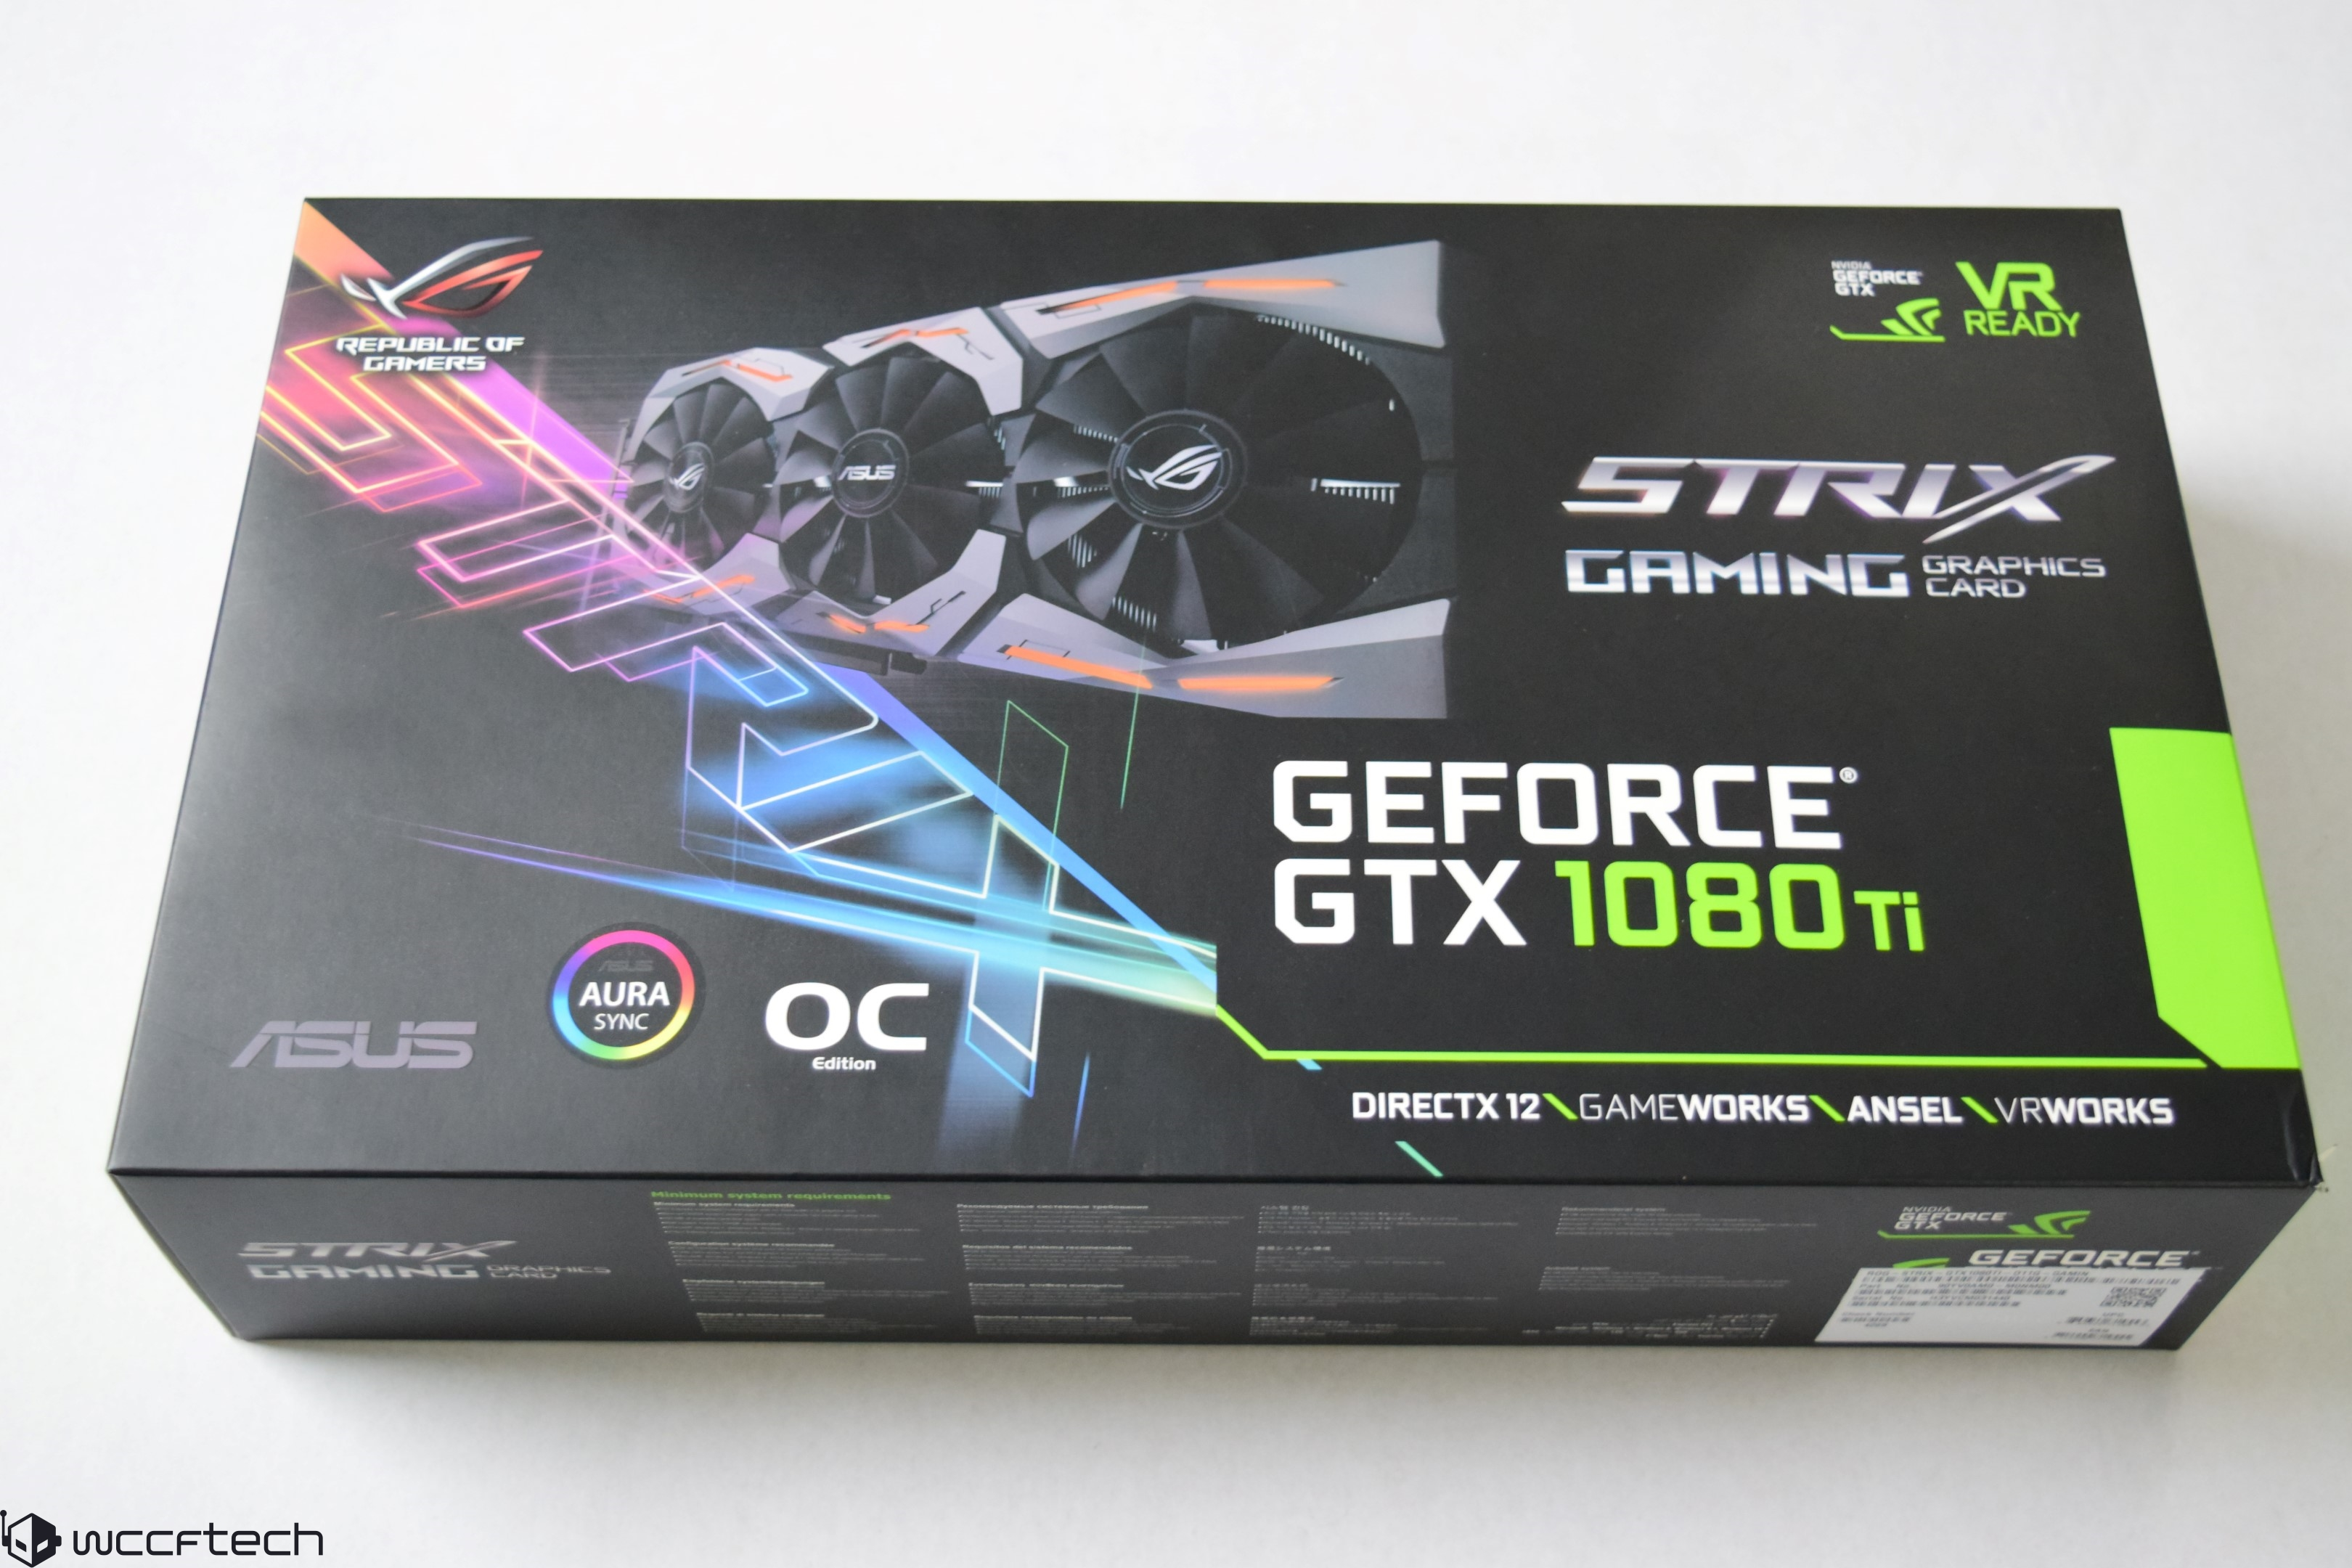 ASUS ROG STRIX GeForce GTX 1080 Ti OC 11 GB Review – When